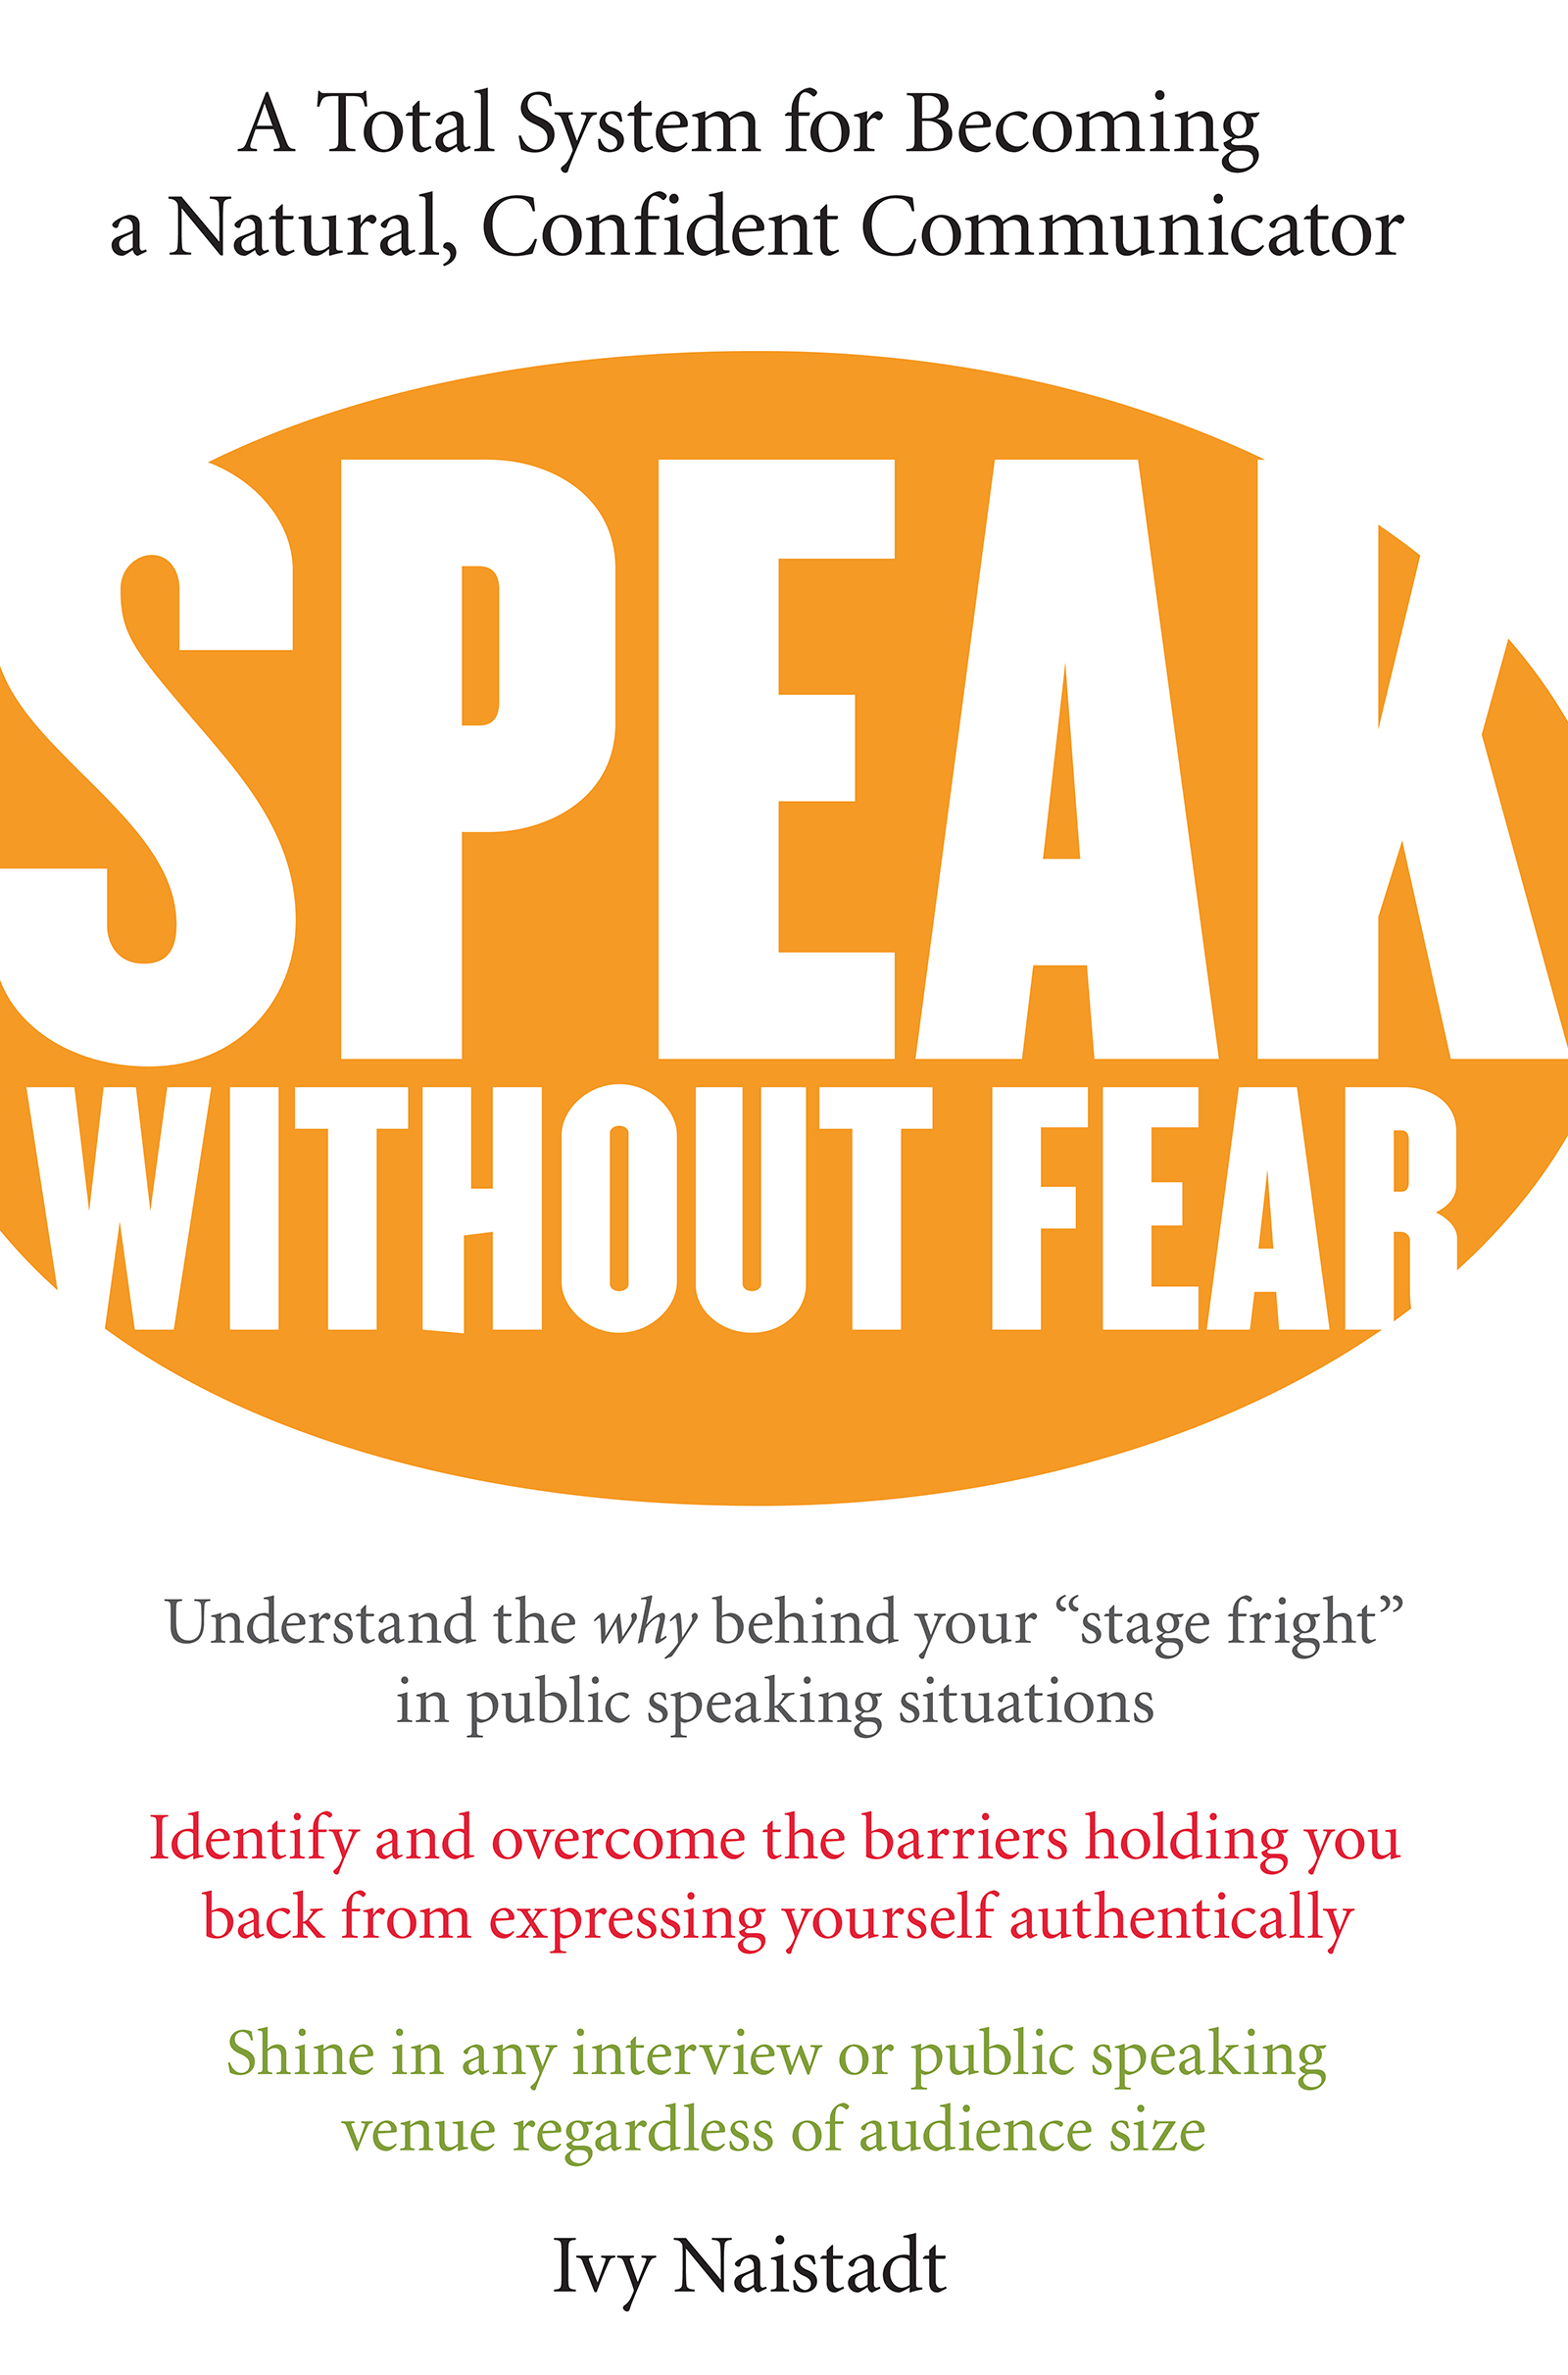 Download Ebook Speak Without Fear by Ivy Naistadt Pdf